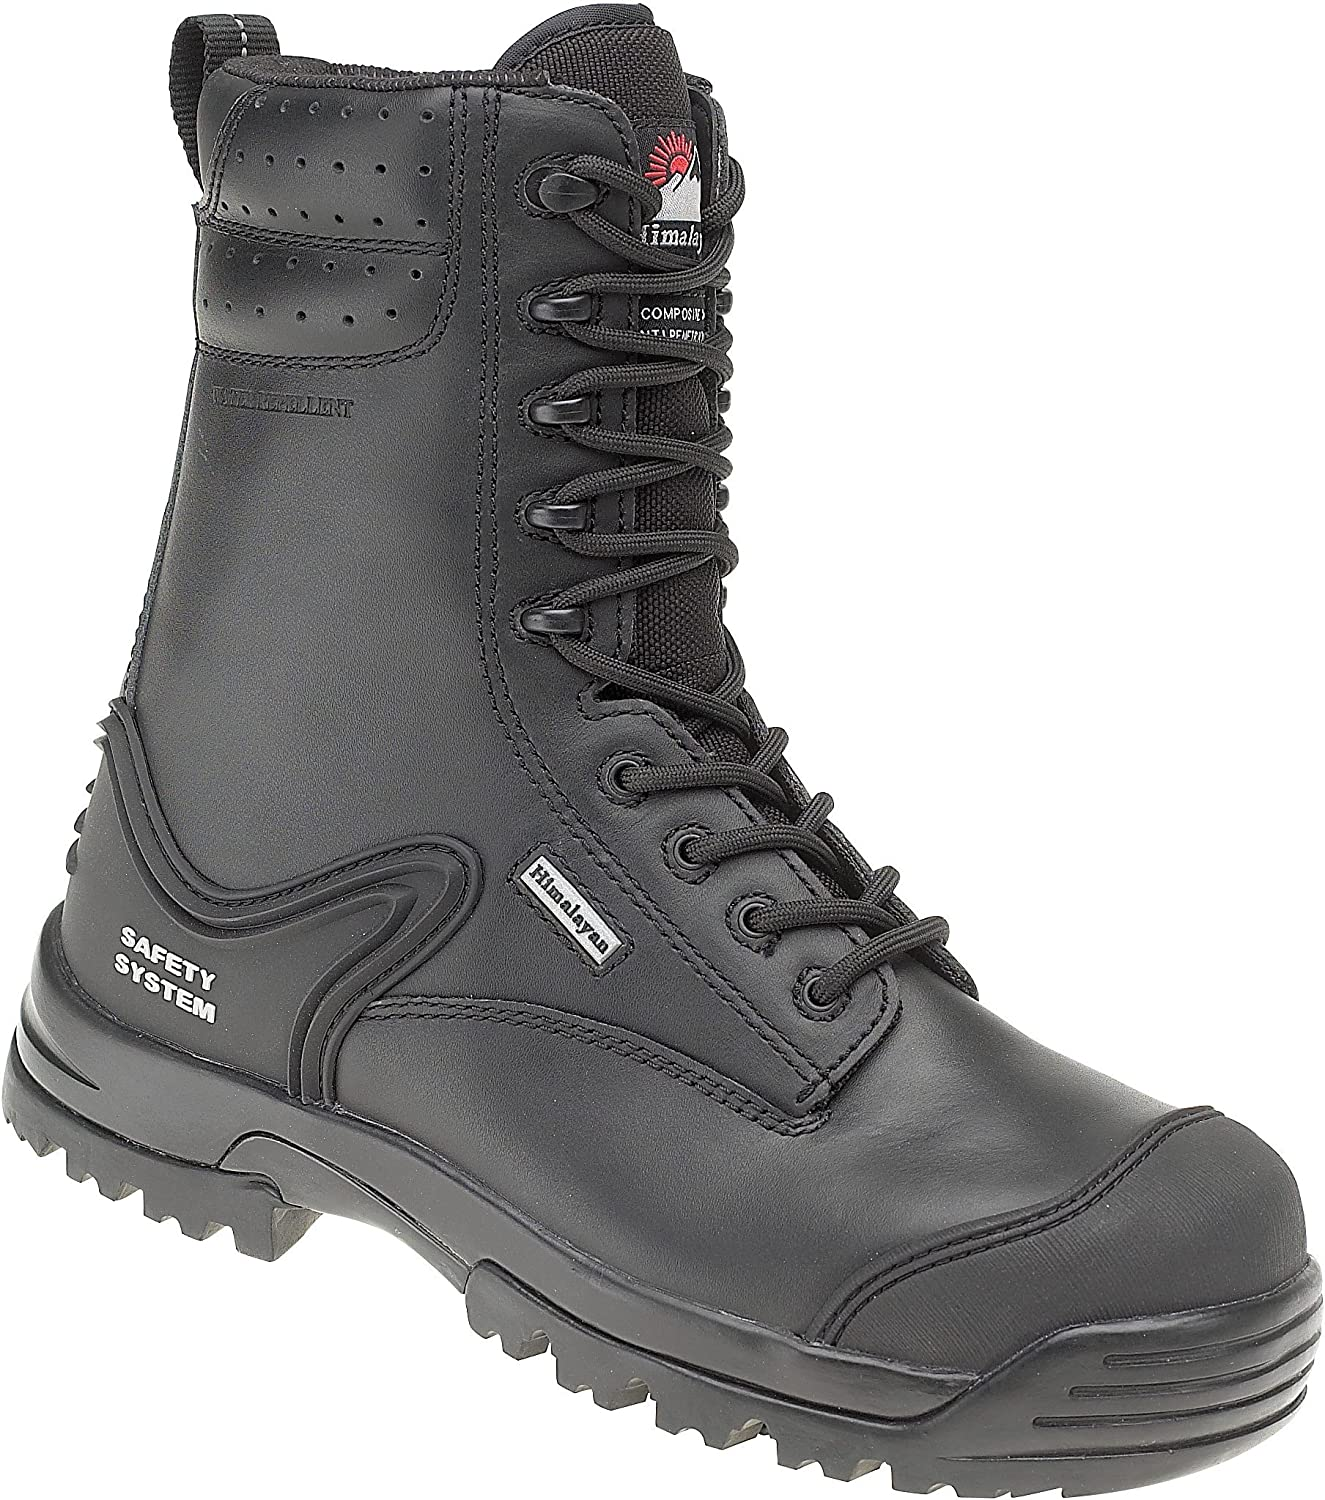 Himalayan 5204 S3 SRC Black Composite Toe Metal Free High Leg Zip Safety Boots